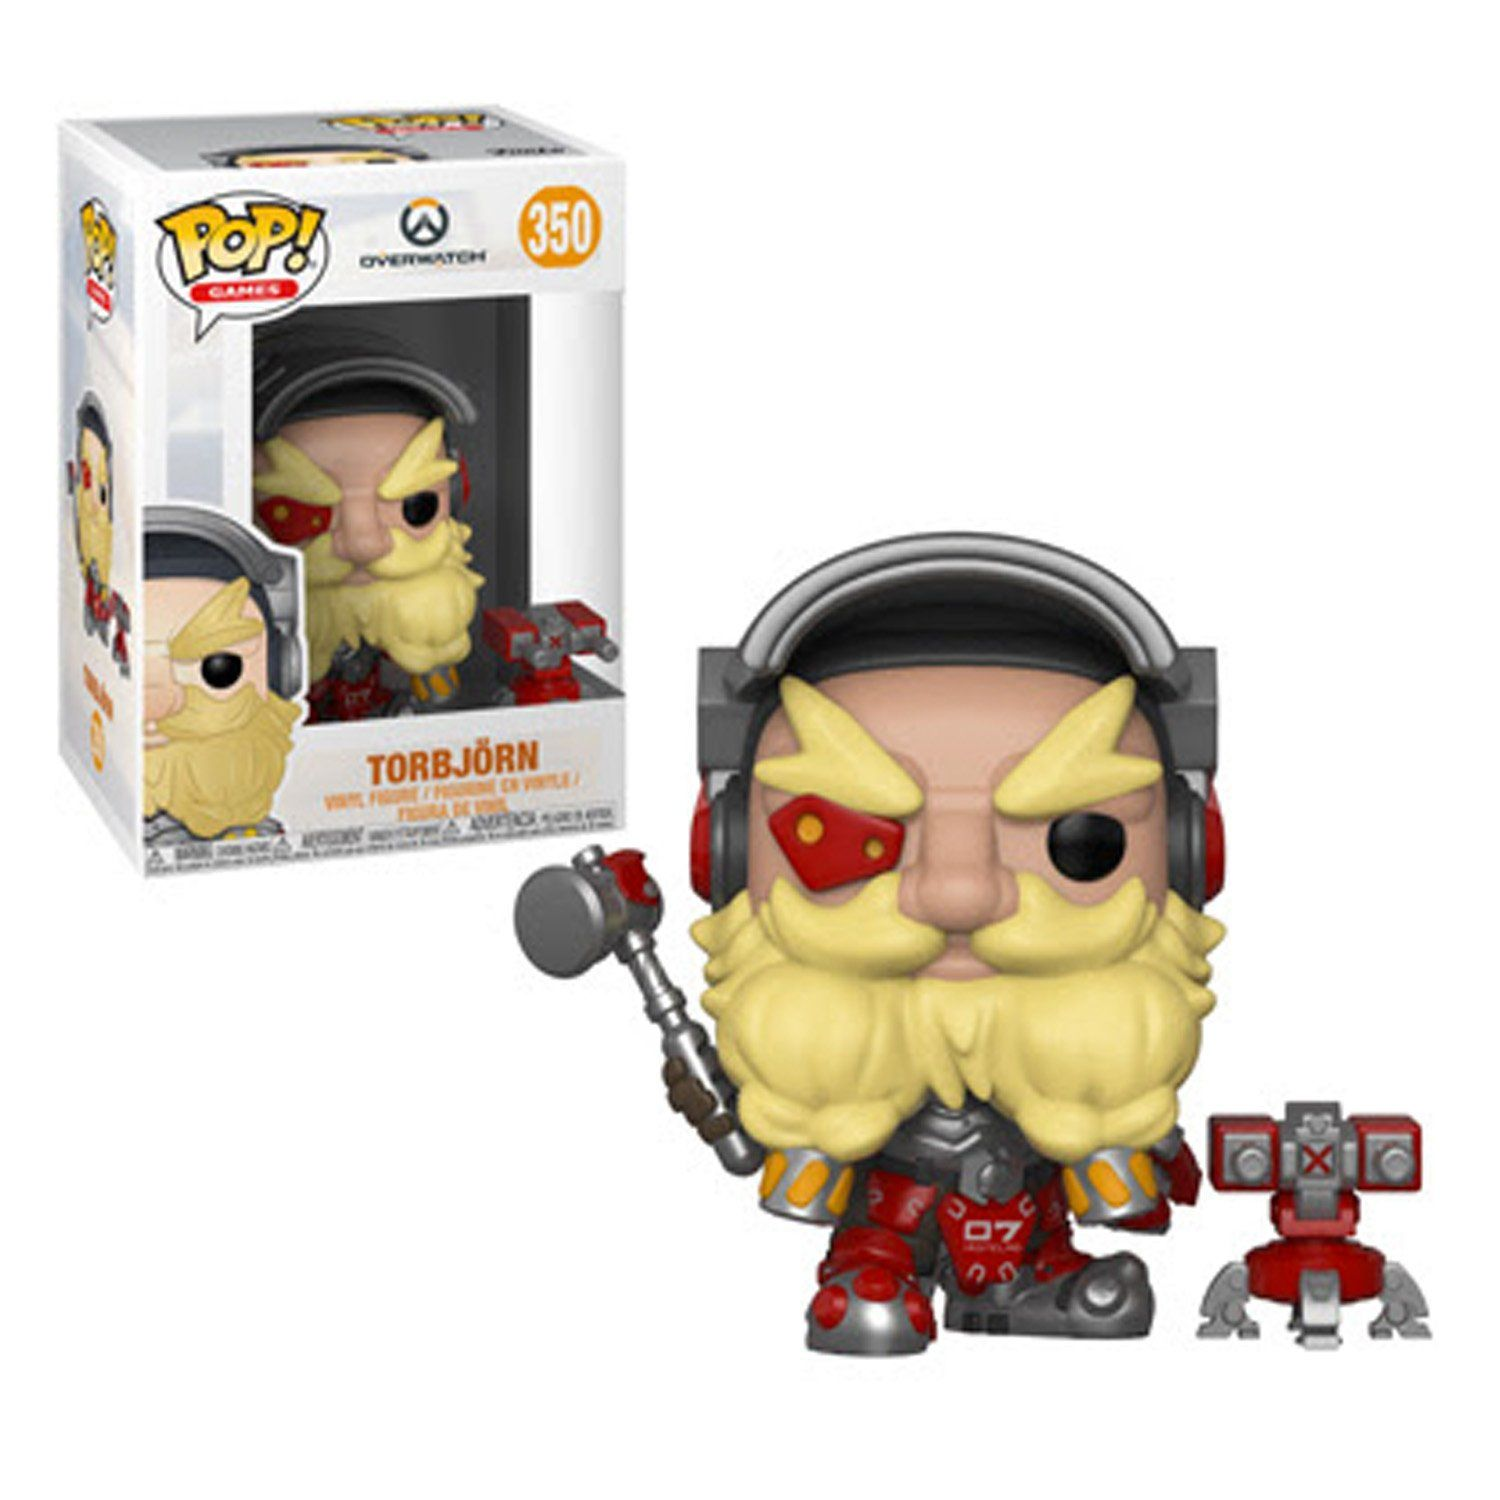 GAMES OVERWATCH 350 TORBJORN VINYL FIGURE POP